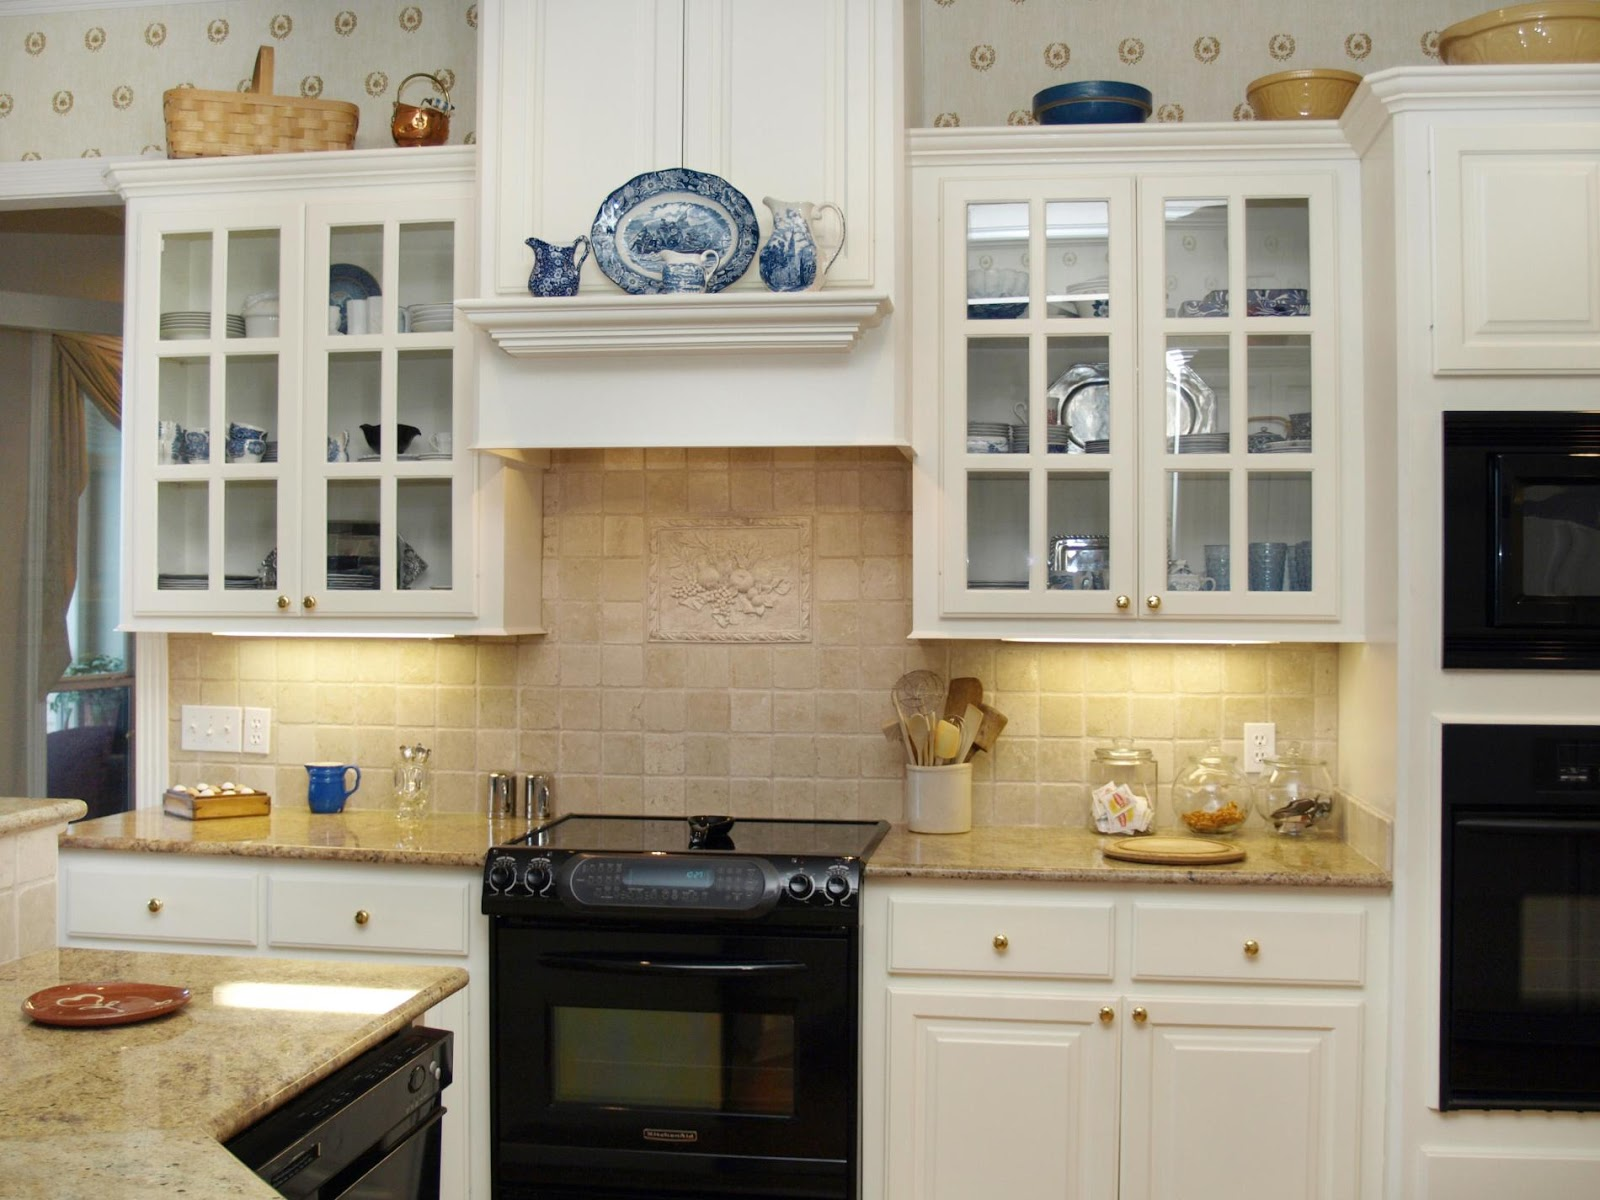 Kitchen shelves decoration dream house experience for Kitchen decoration